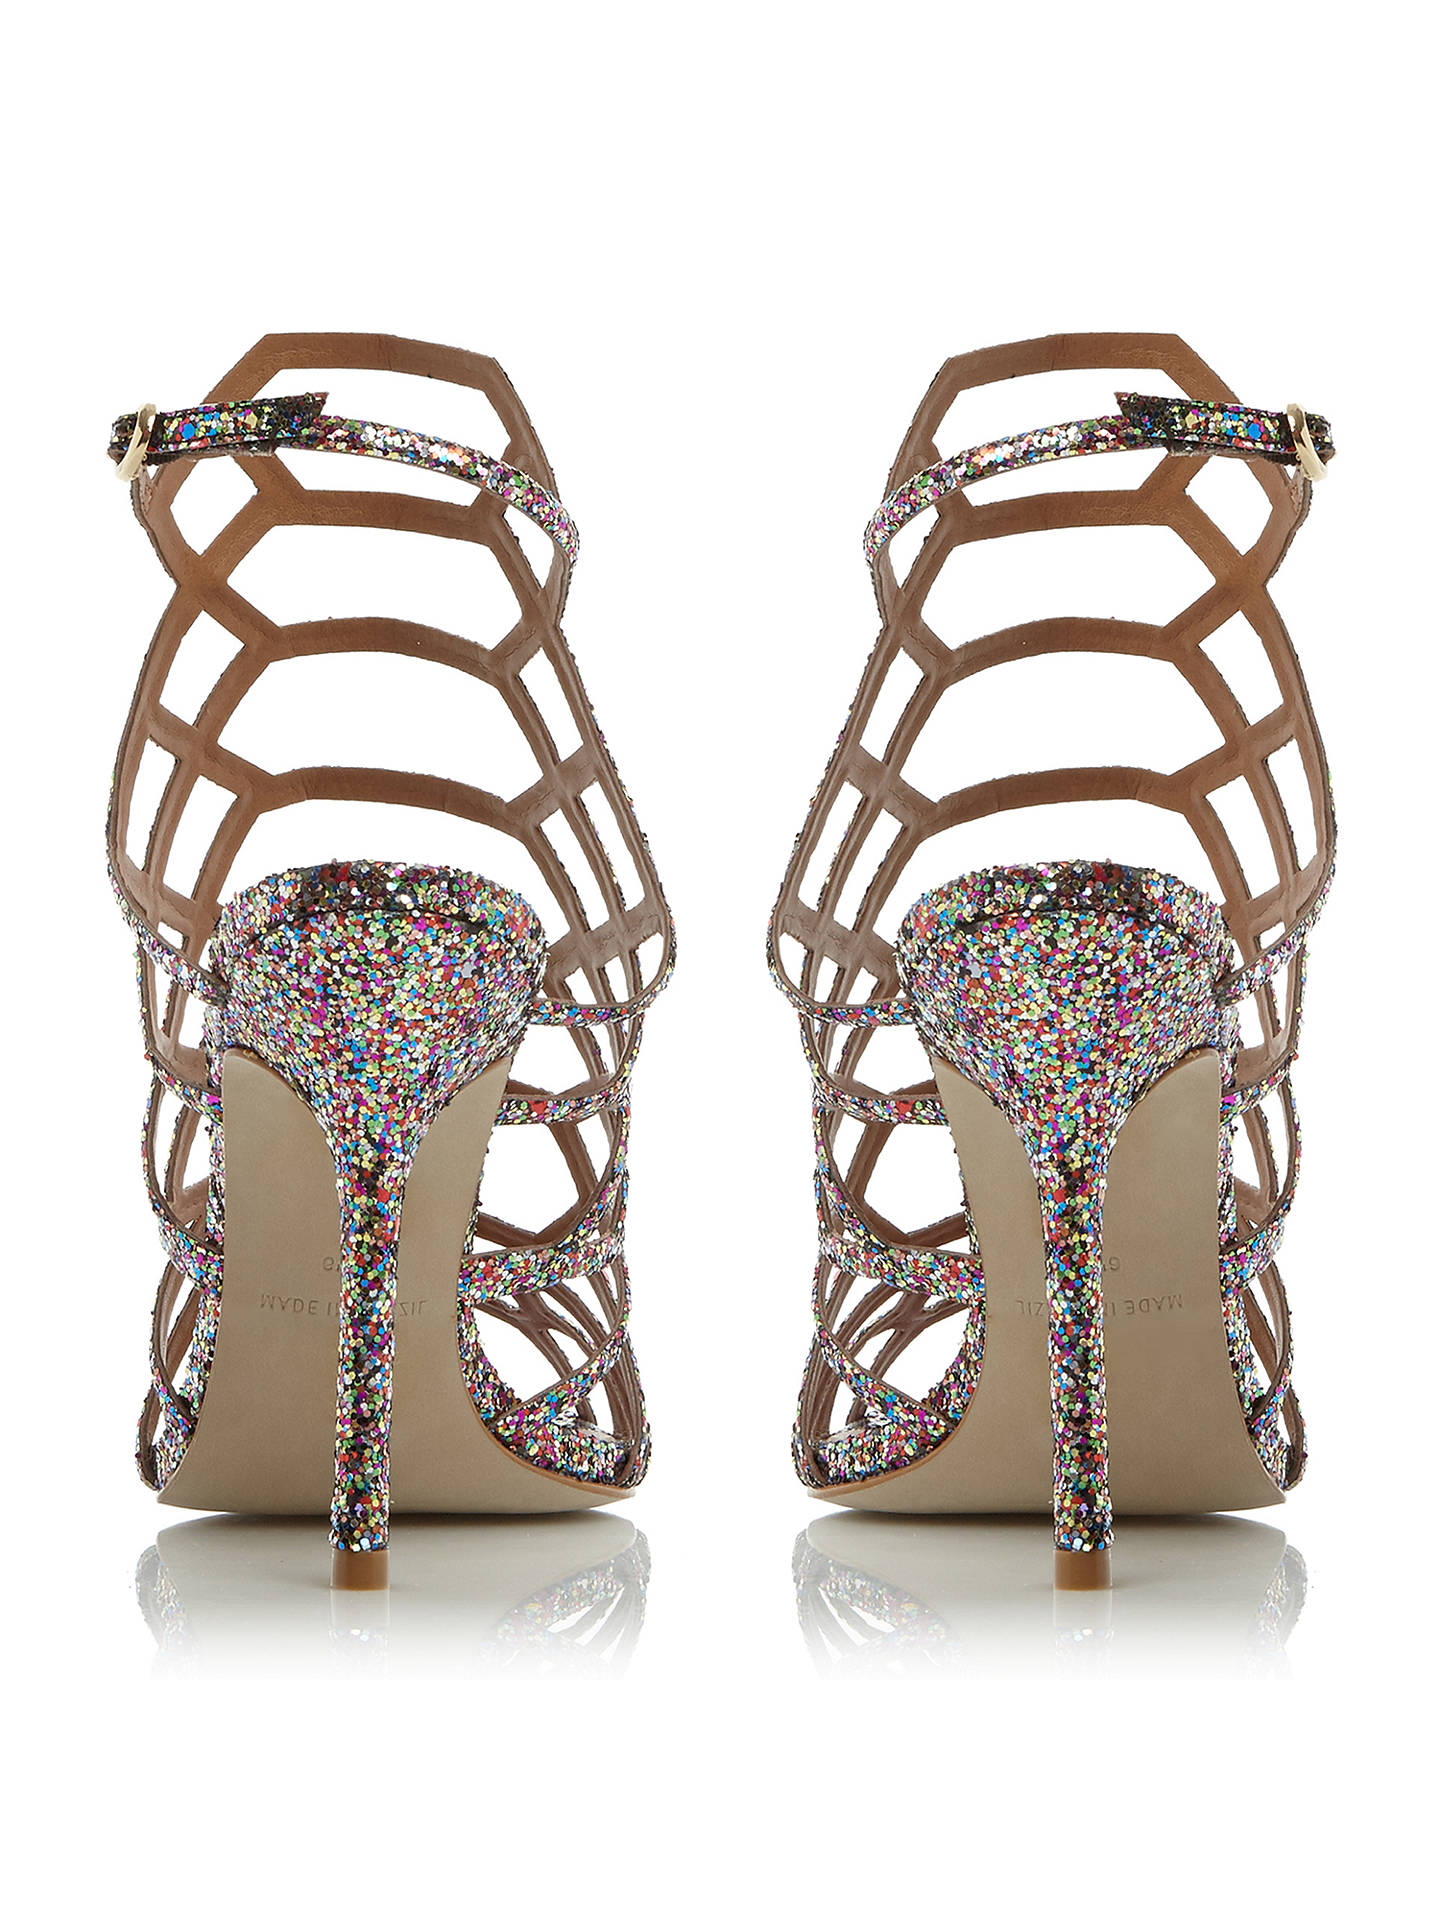 Buy Steve Madden Slithur High Heeled Cage Sandals, Glitter, 5 Online at johnlewis.com